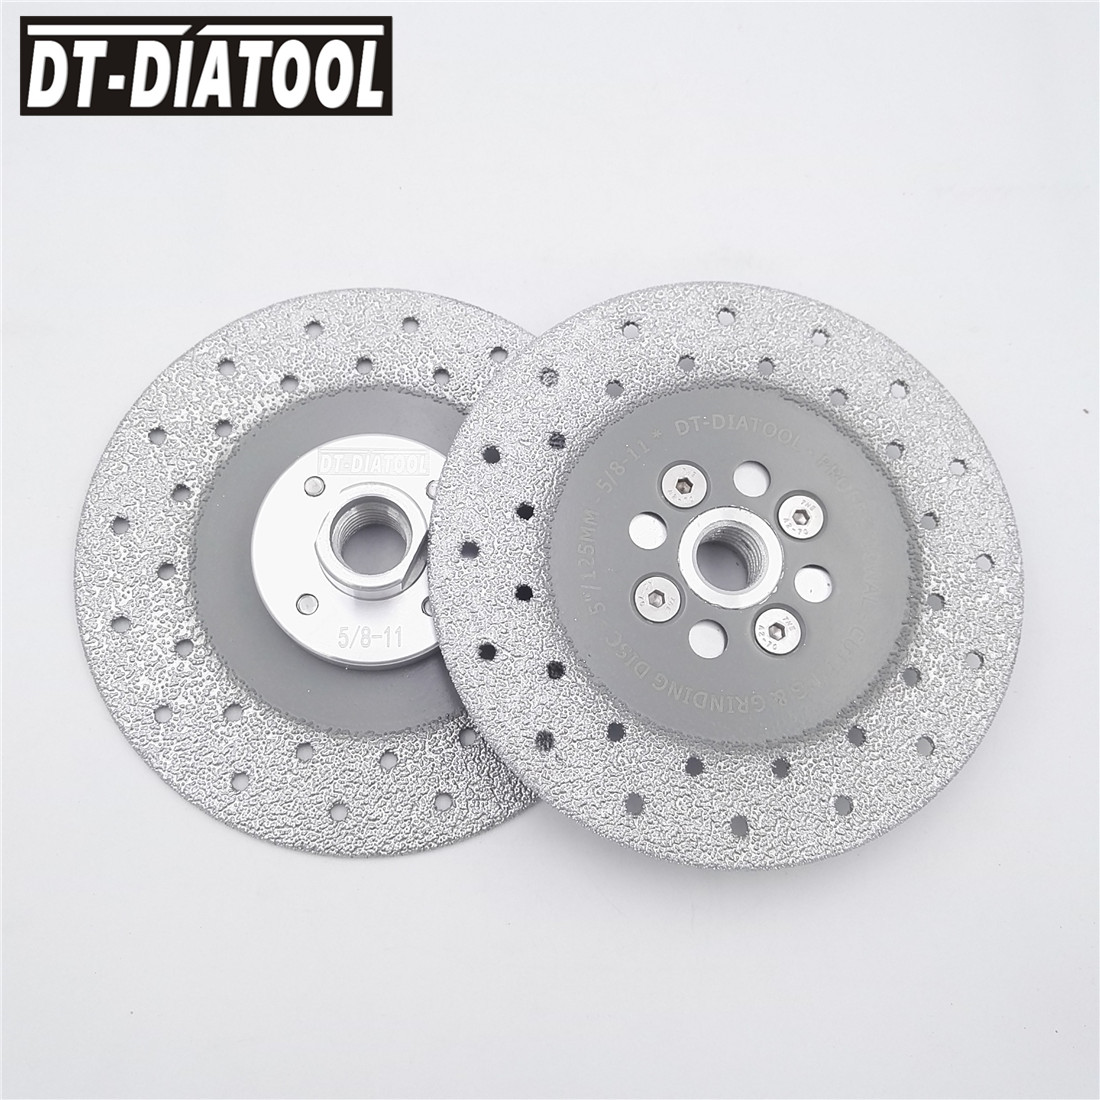 2pcs/units 5 Double Sided Vacuum Brazed Diamond Cutting wheel Grinding Disc 5/8-11 Flange Diameter 125MM for Shaping stone disney mickey mouse kids birthday party decoration set party supplies cup plate banner hat straw loot bag fork